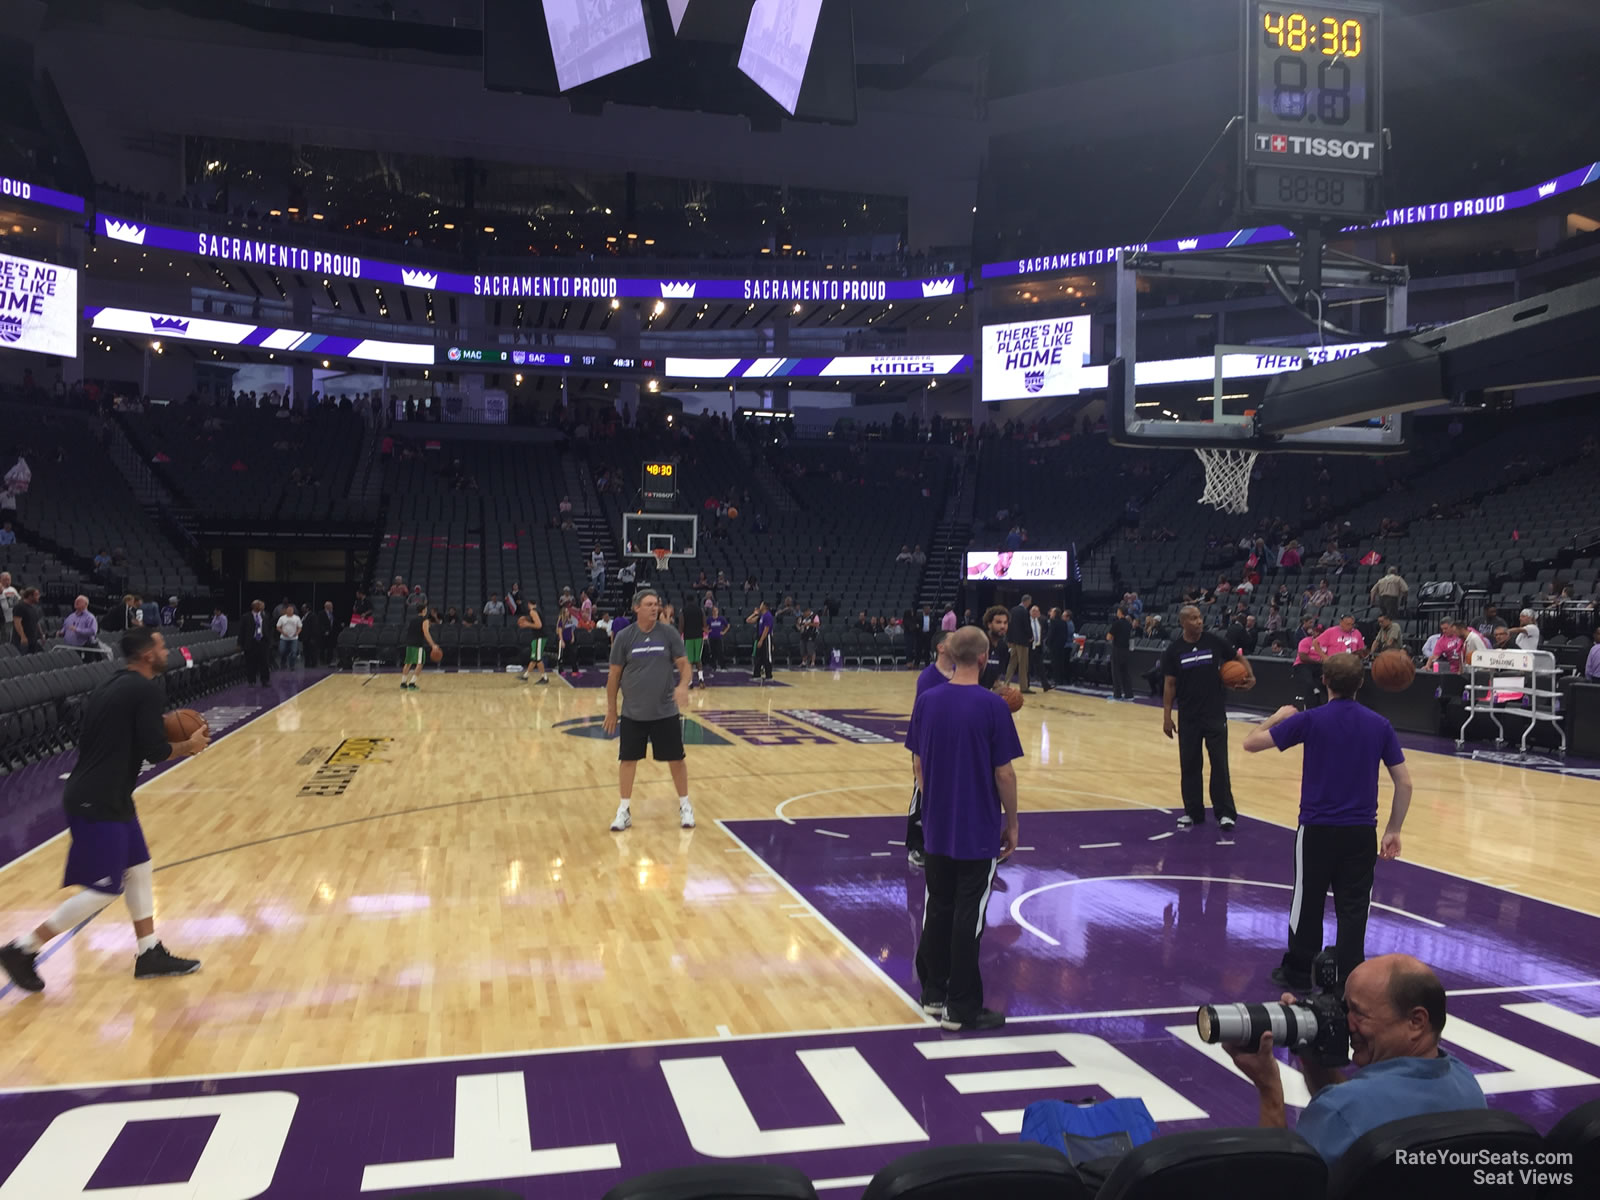 Courtside 5 seat view